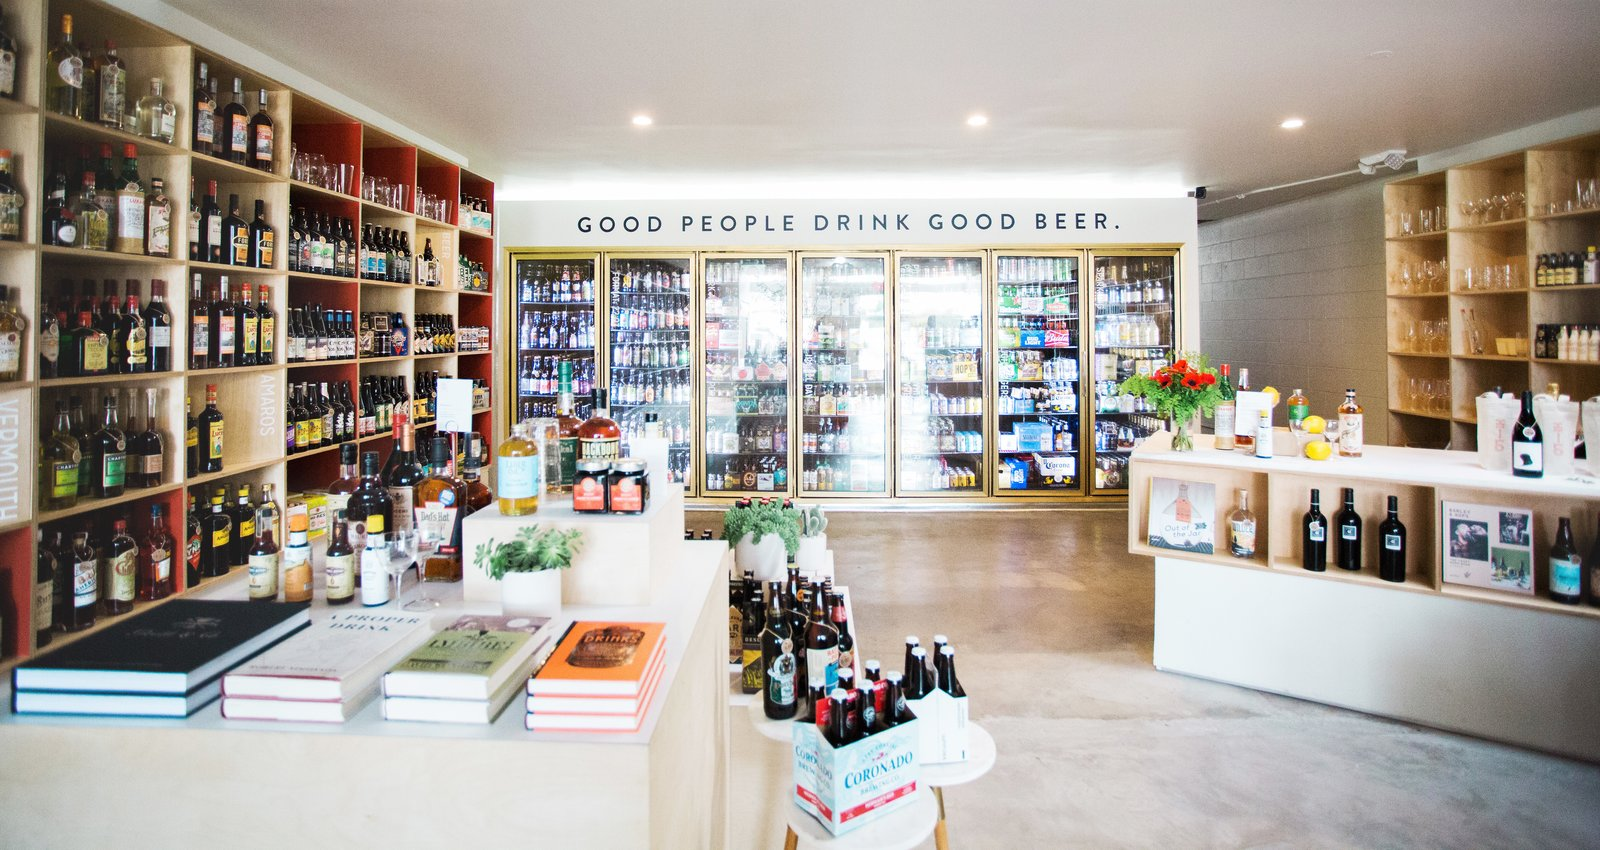 Photo 7 of 9 in A Modern Liquor Market in Culver City Reminds the Neighborhood to Drink Well